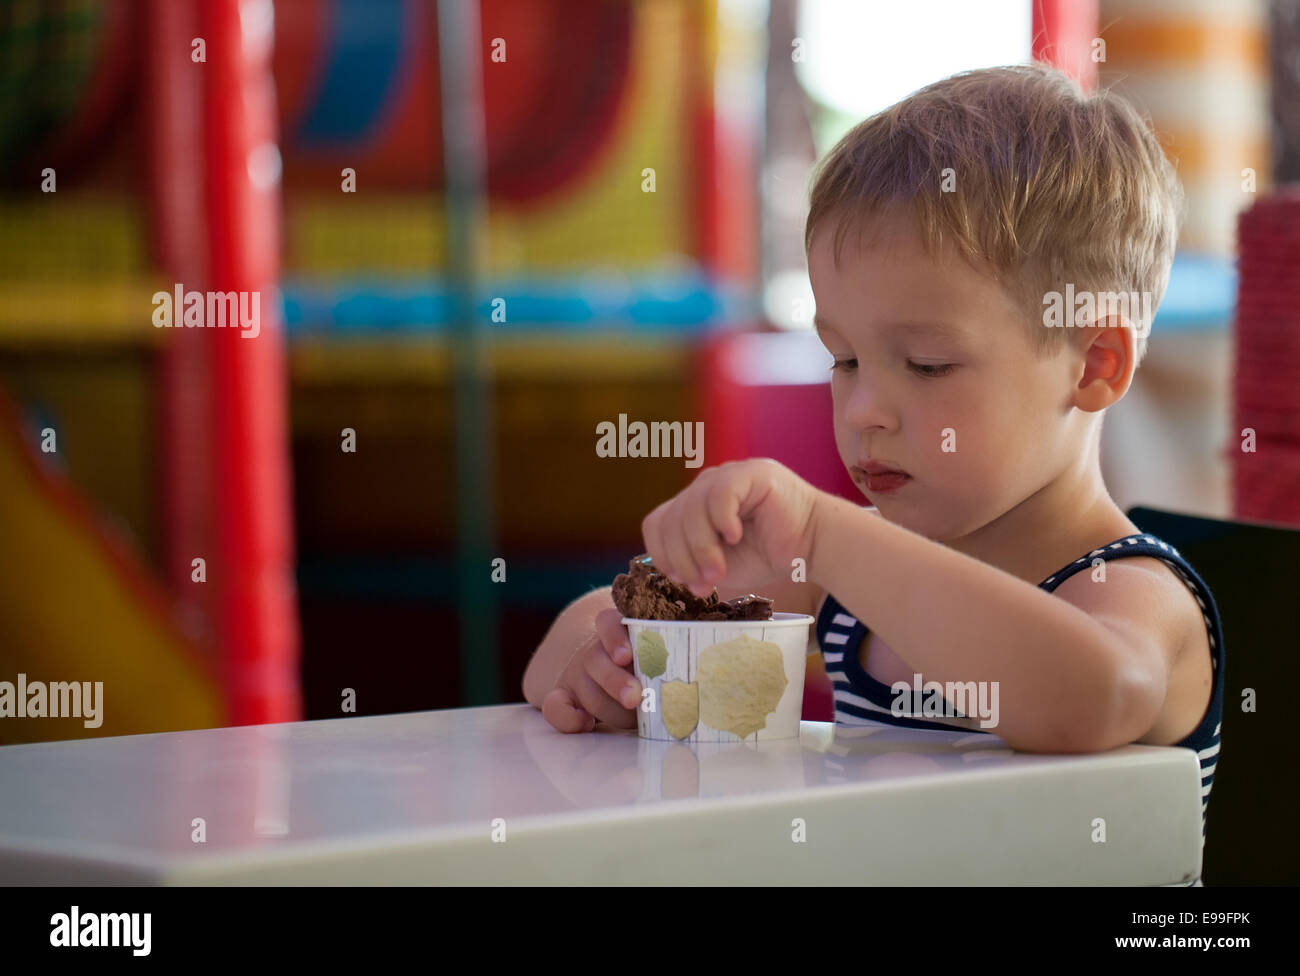 Little child eating chocolate ice cream - Stock Image